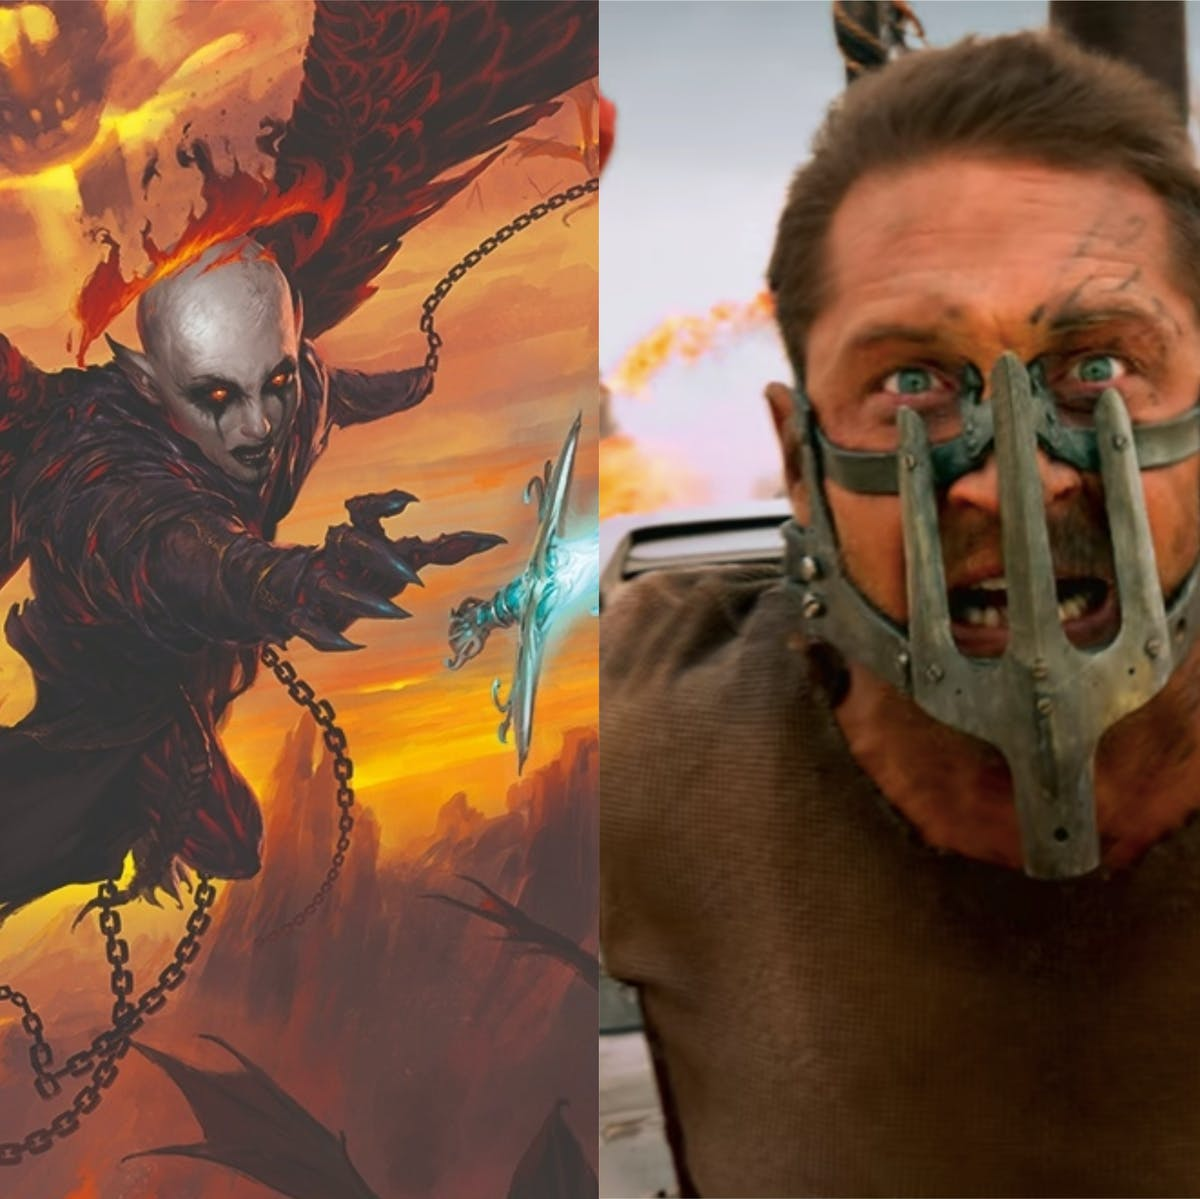 D&D 'Descent Into Avernus': How One 'Mad Max' Scene Inspired the Game